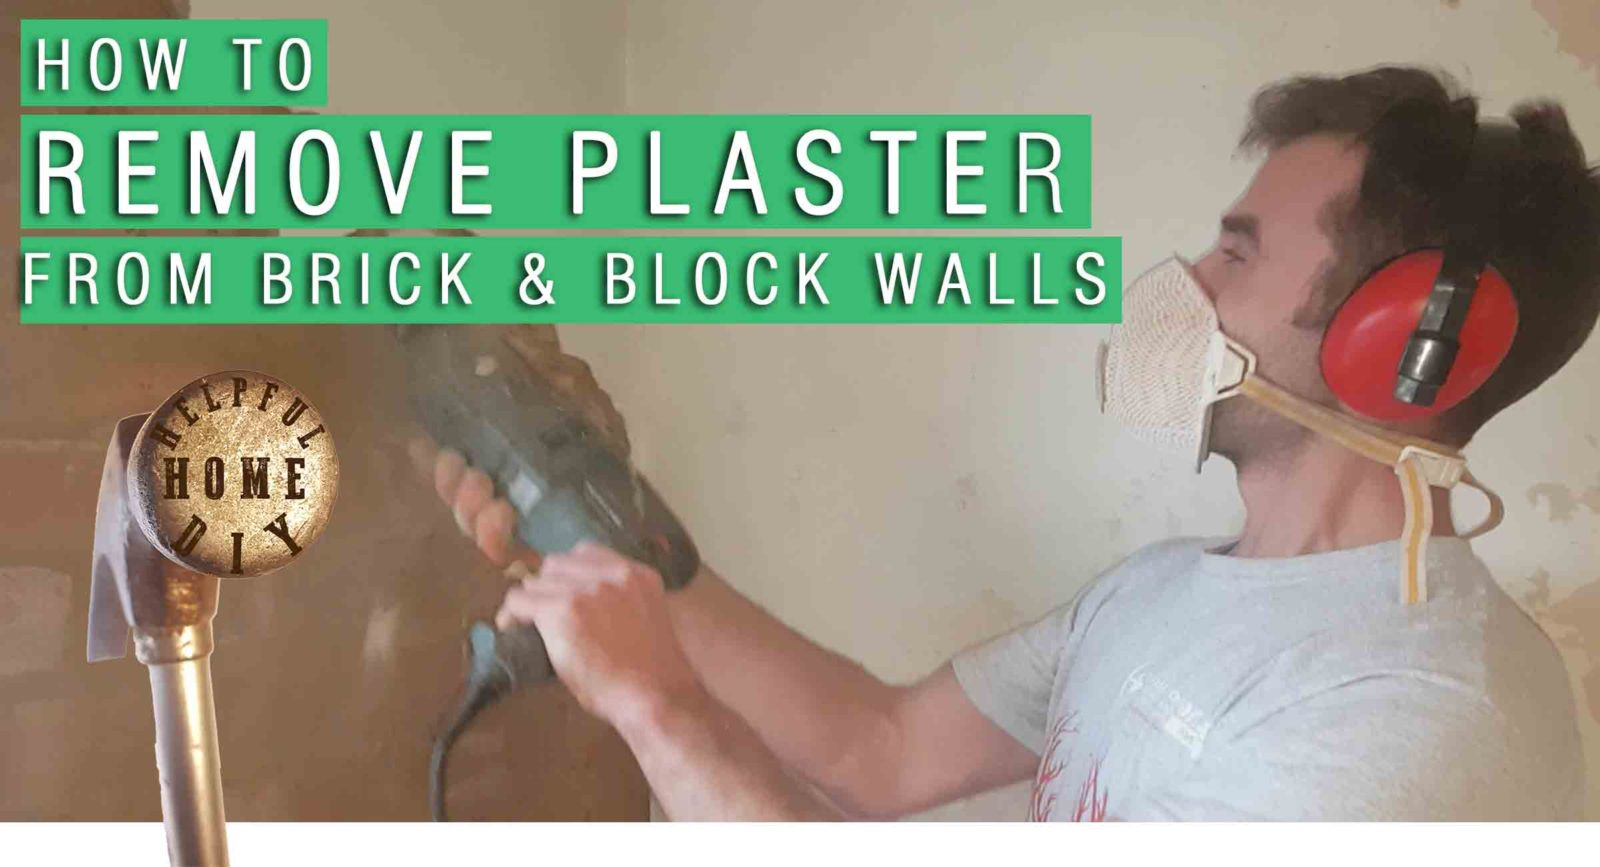 image of sam removing plaster from a wall with the title at the top